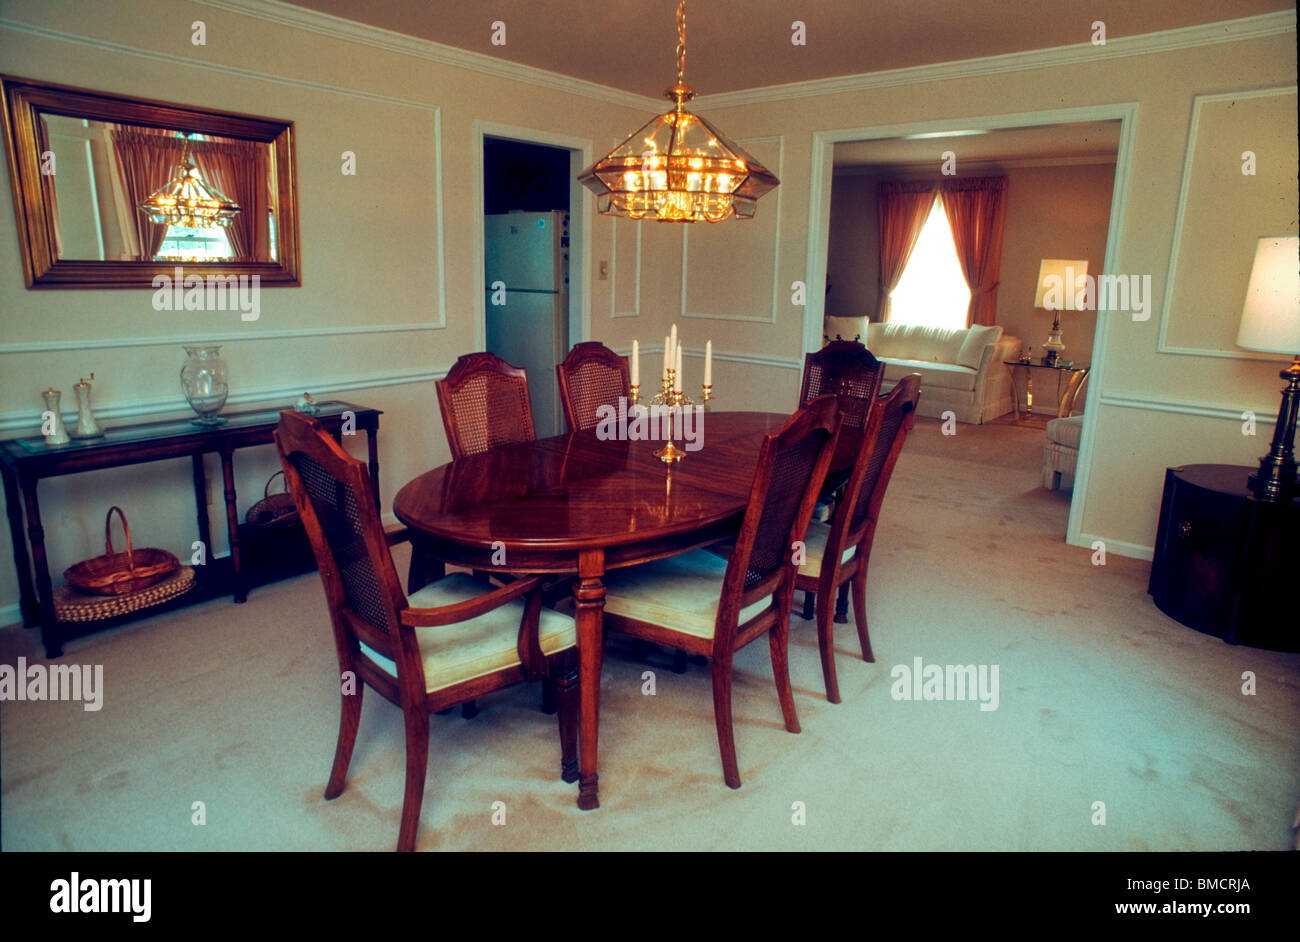 Pittsburgh Pa Usa Inside Classical Dining Room Wooden Furniture Stock Photo Alamy